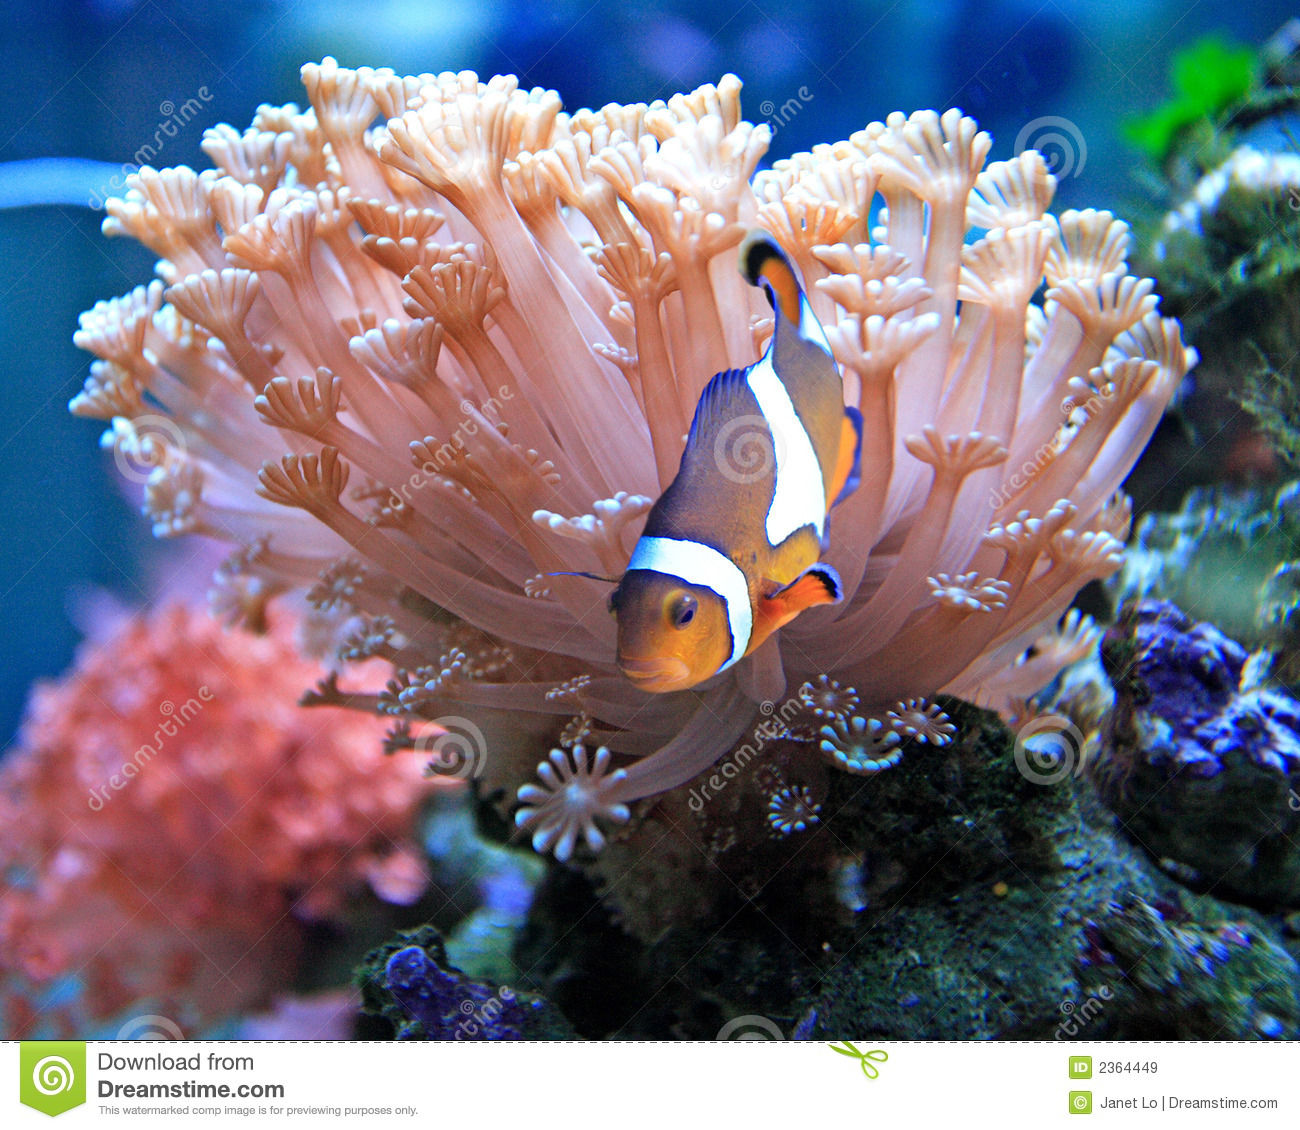 Clown fish royalty free stock images image 2364449 for Clown fish habitat